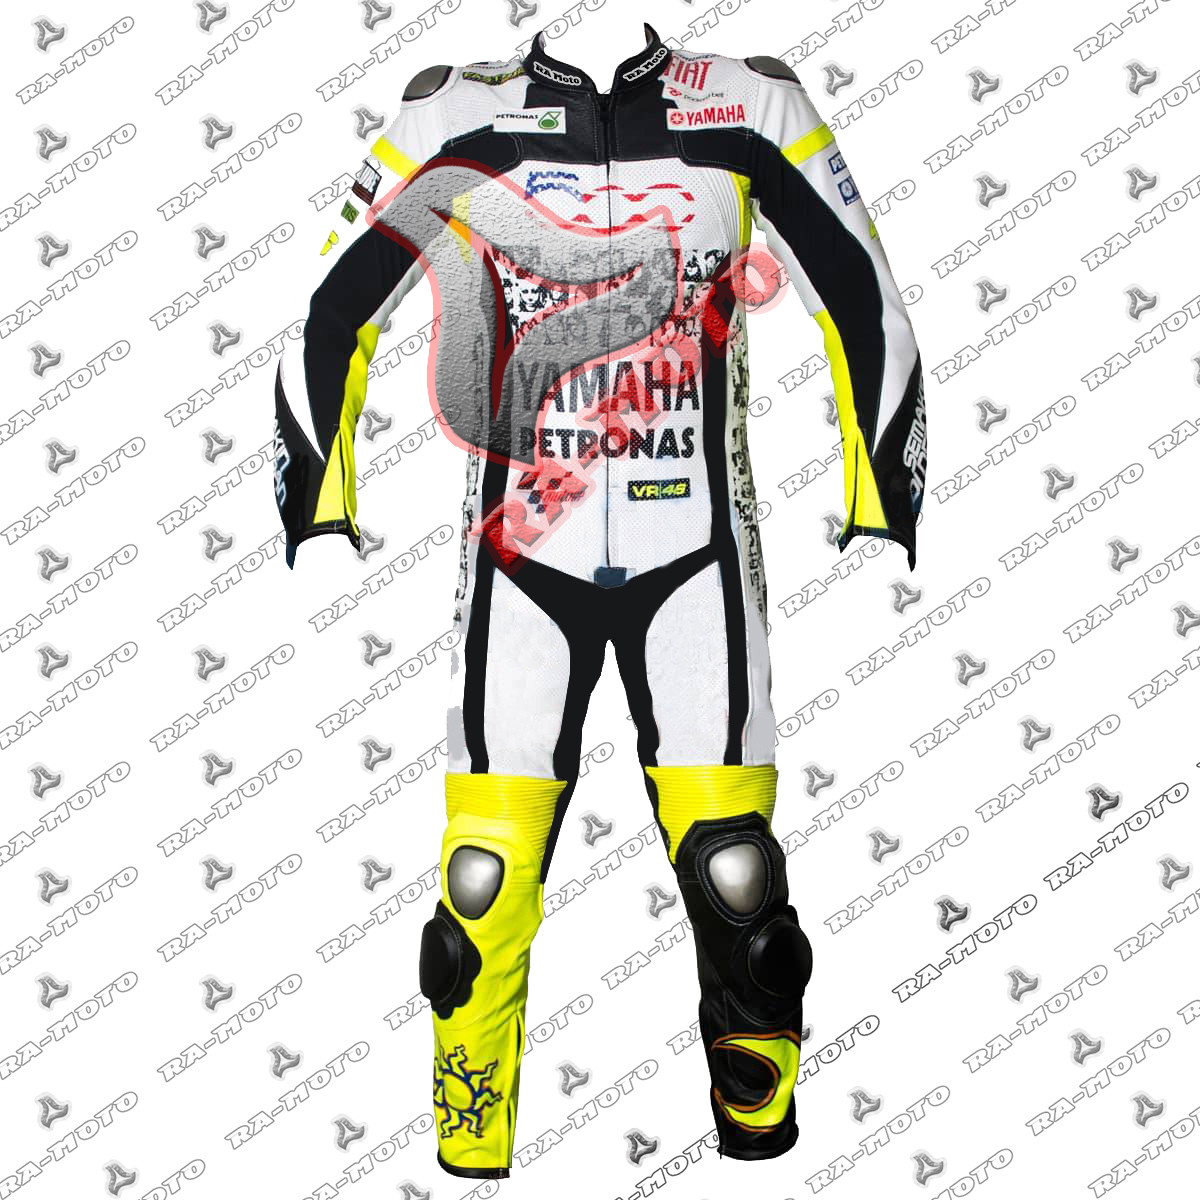 RA-15203 Valentino Rossi Special 500 Mila Race Suit